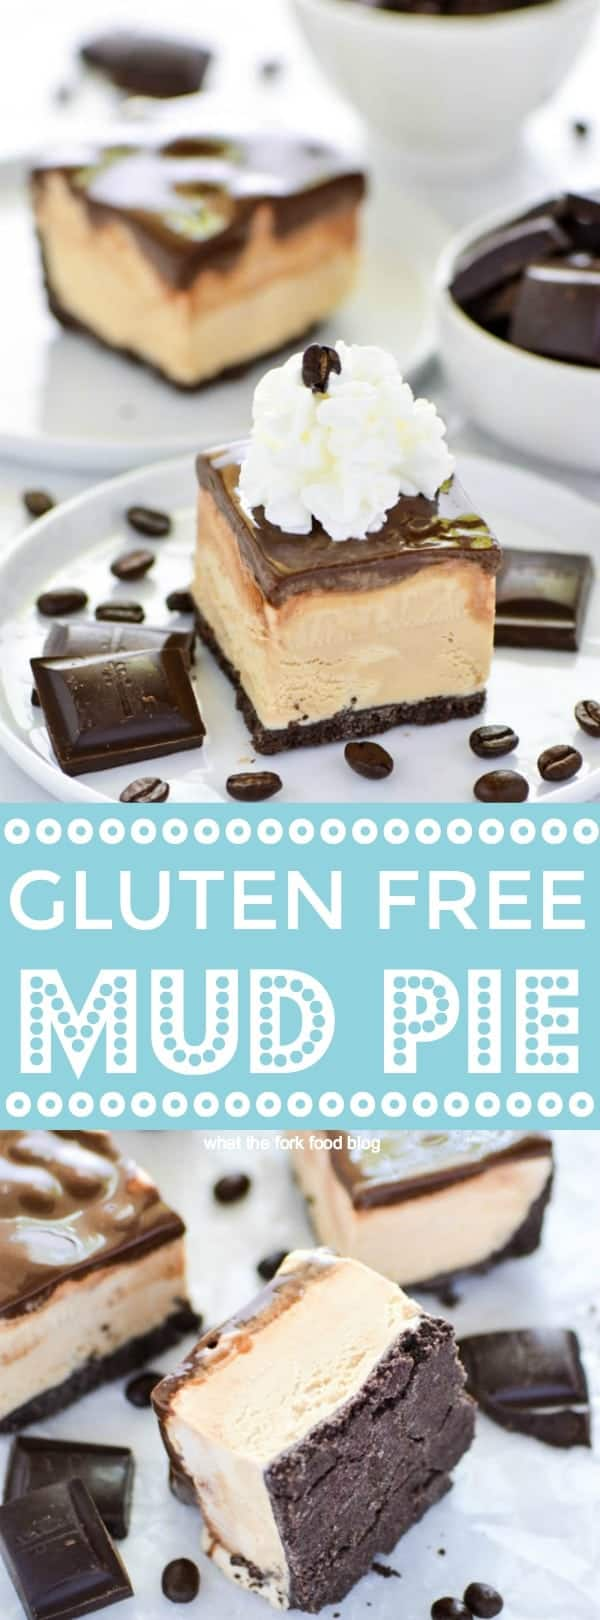 Easy Gluten Free Mud Pie Recipe - not to be confused with Mississippi Mud Pie! This one has a chocolate cookie crust, is filled with coffee ice cream, and coated in hot fudge sauce. Recipe from @whattheforkblog | whattheforkfoodblog.com | gluten free dessert recipes | no bake desserts | summer recipes | ice cream cake | ice cream pie | frozen desserts | Oreo | how to make mud pie